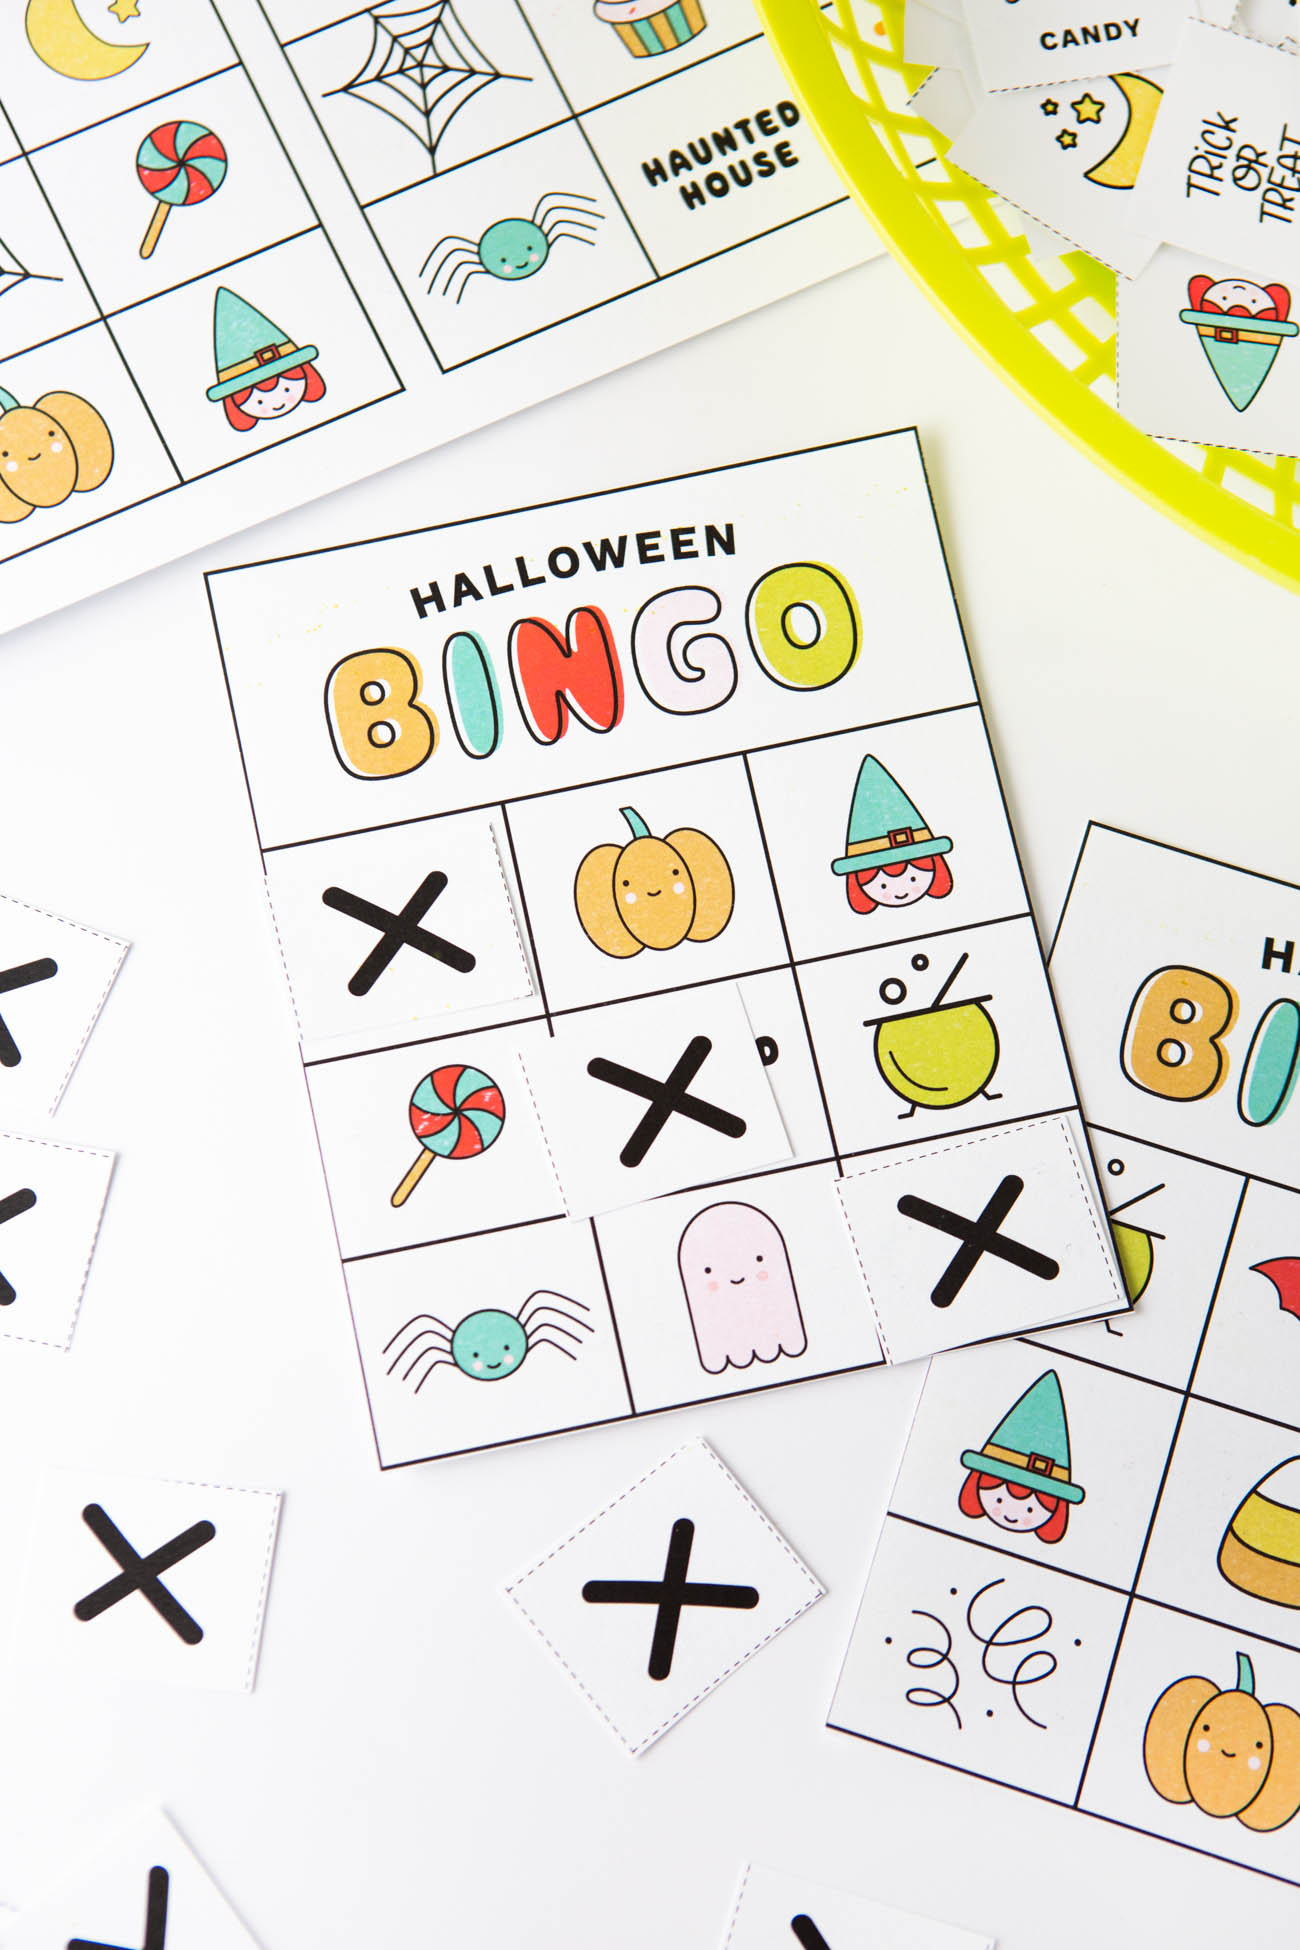 picture regarding Printable Halloween Bingo Card identified as No cost Printable Halloween Bingo Playing cards - Design and style Consume Repeat